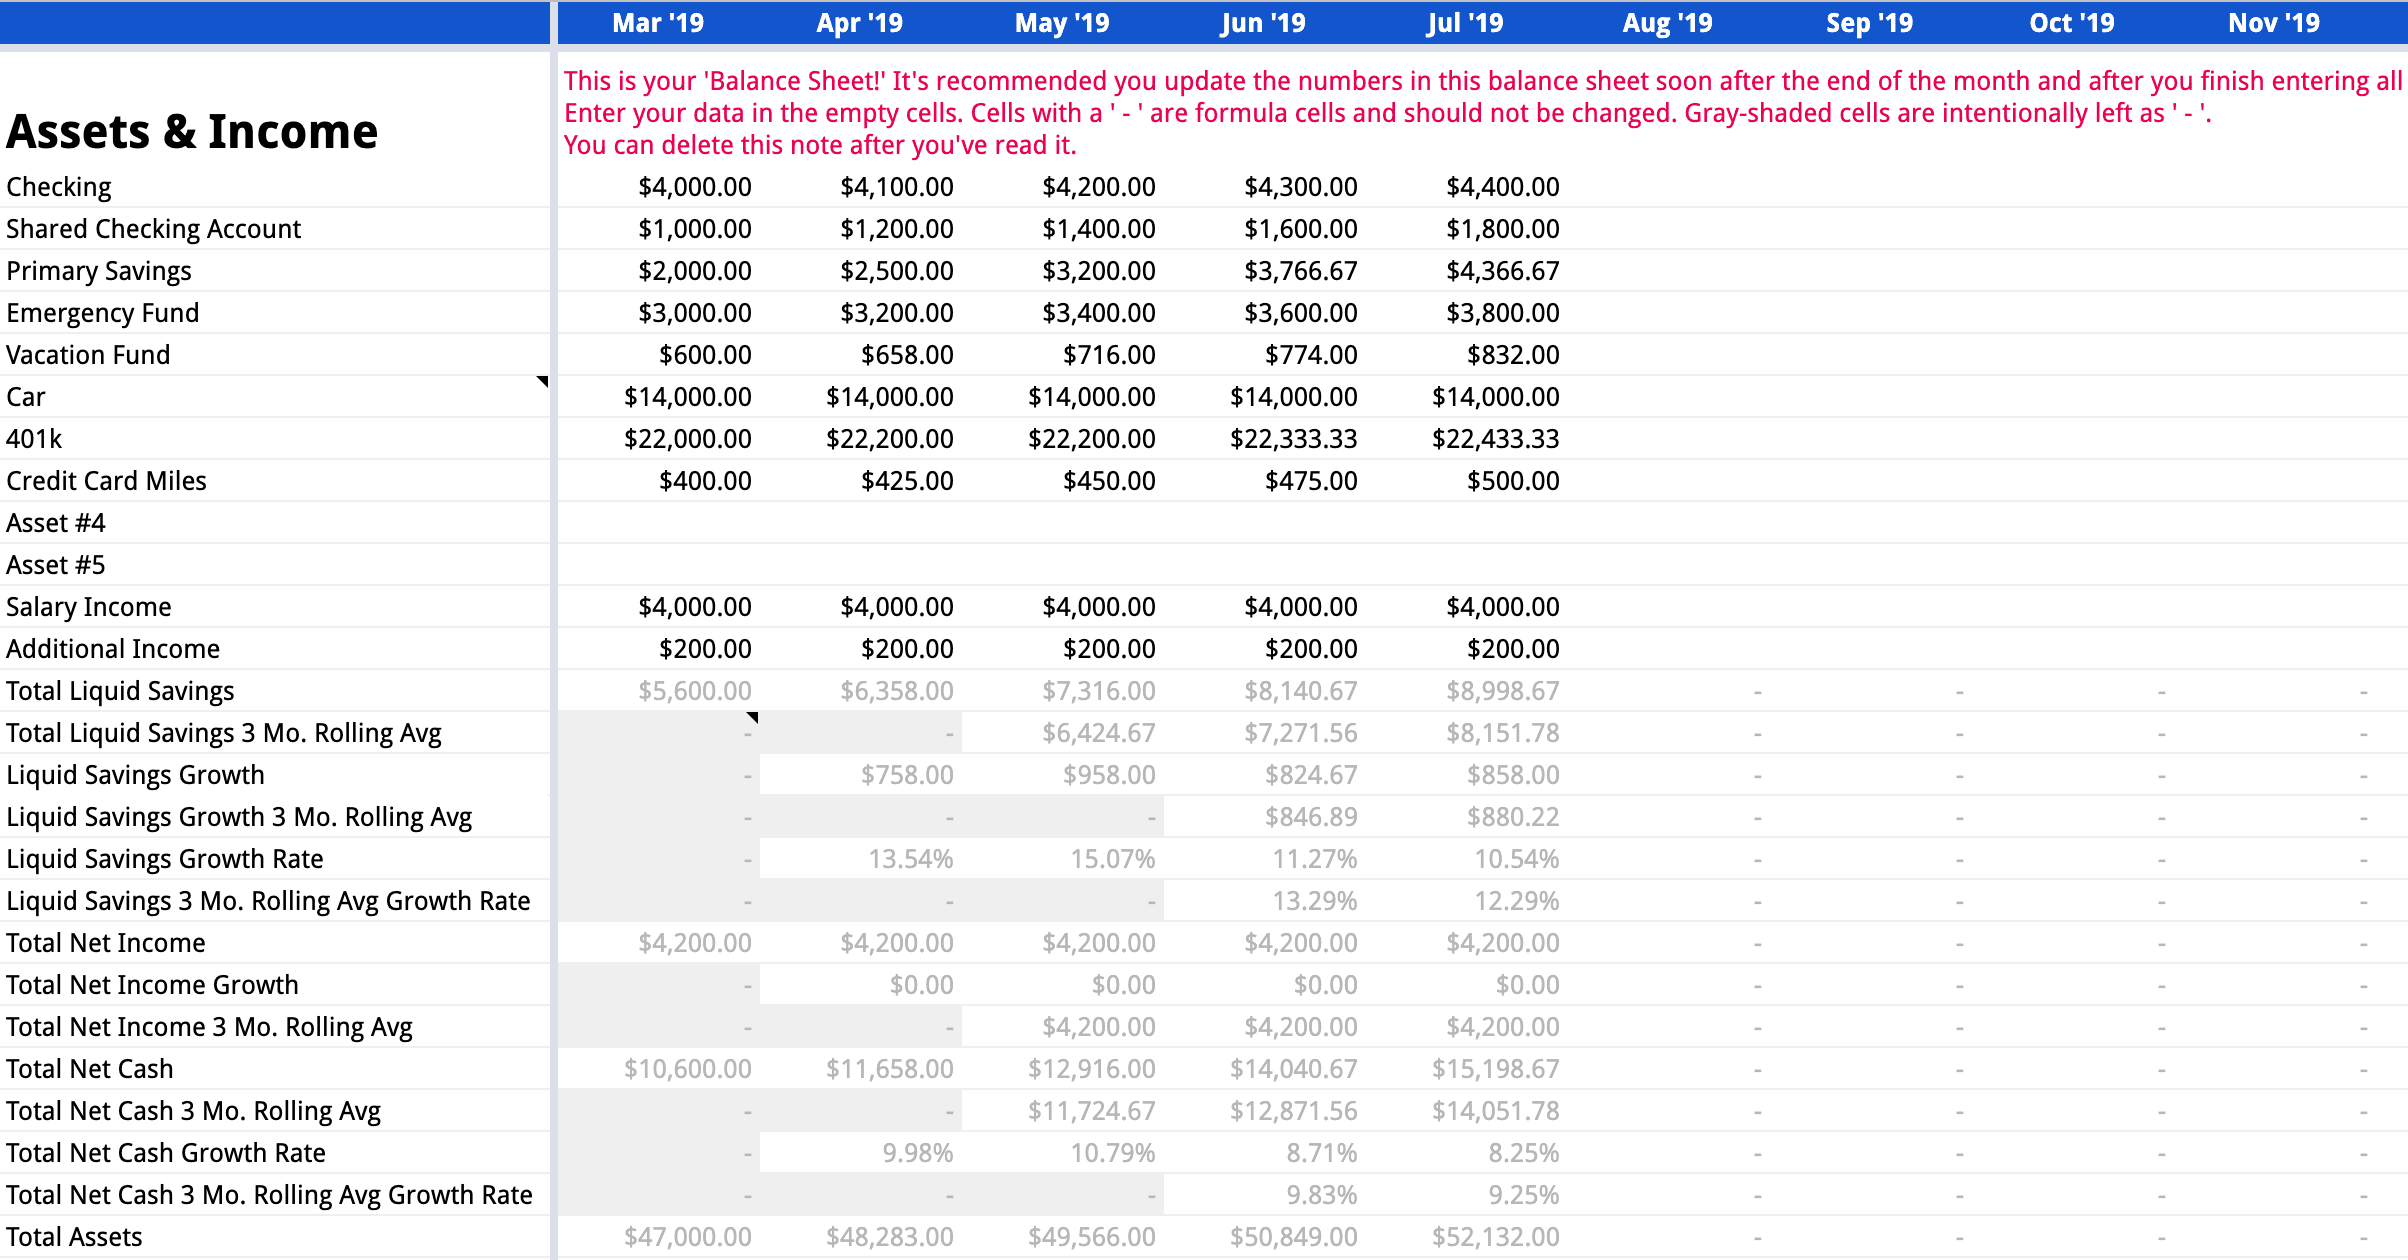 Example of the Assets & Income section with sample data on the Balance Sheet tab